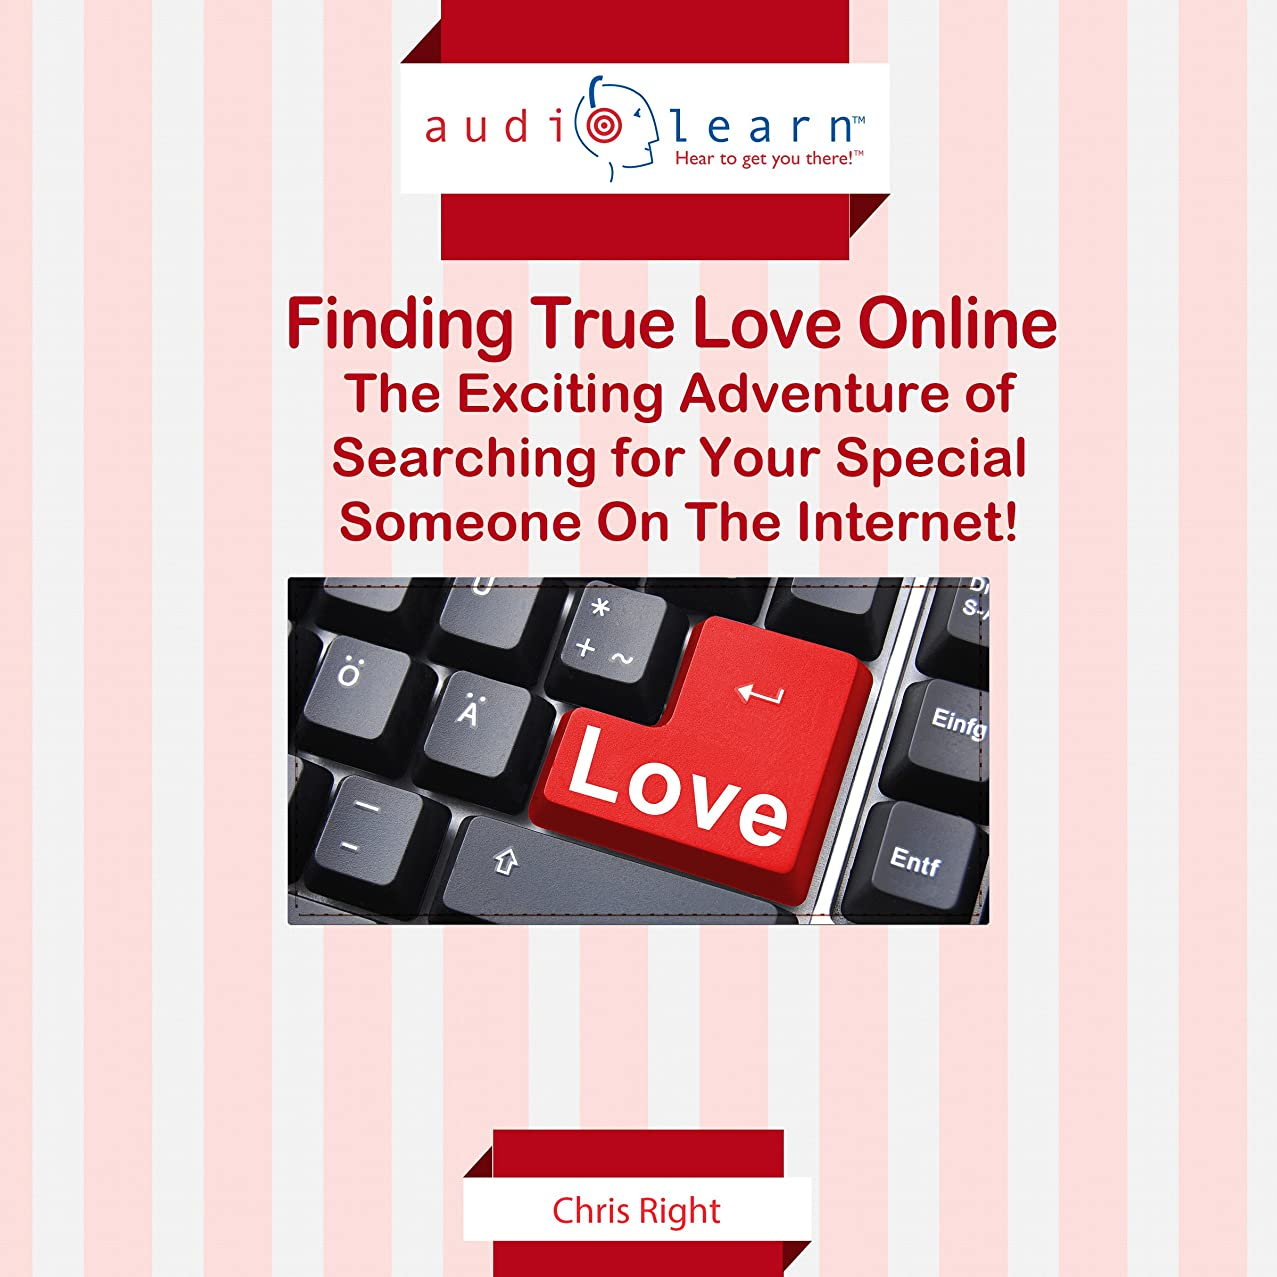 Finding True Love Online: The Exciting Adventure of Searching for Your Special Someone on the Internet!